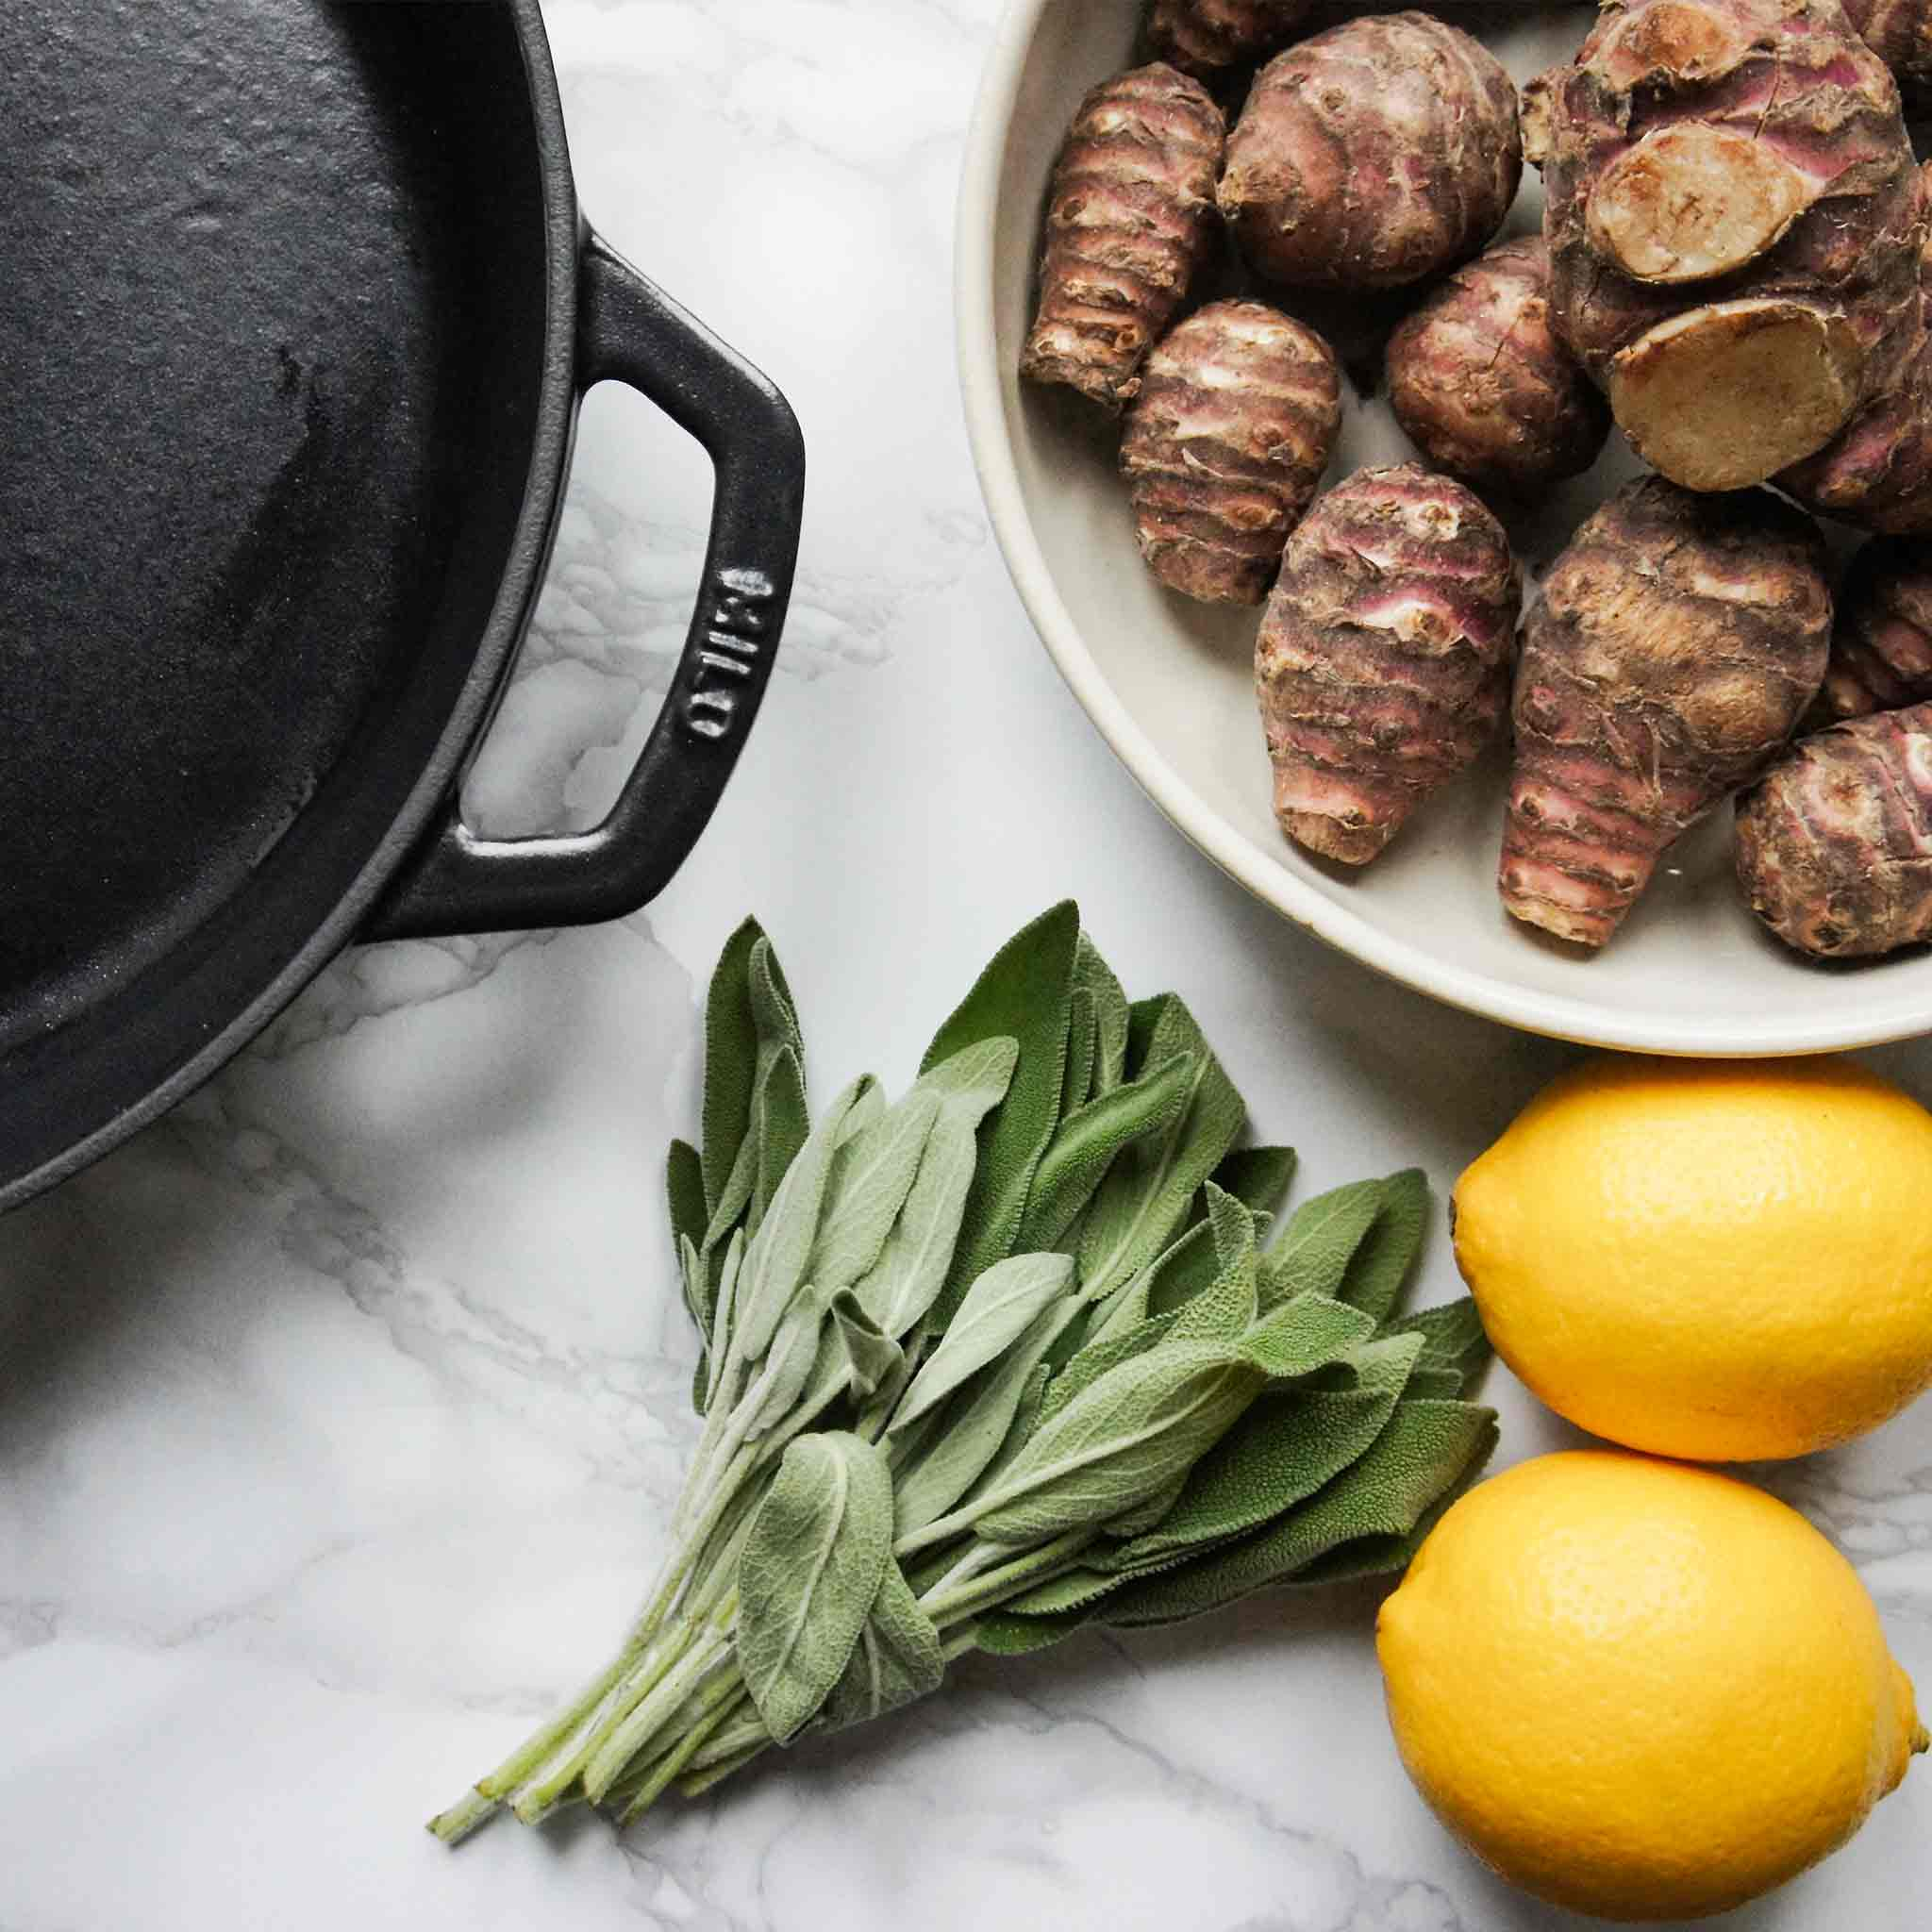 Jerusalem artichokes with lemon and sage